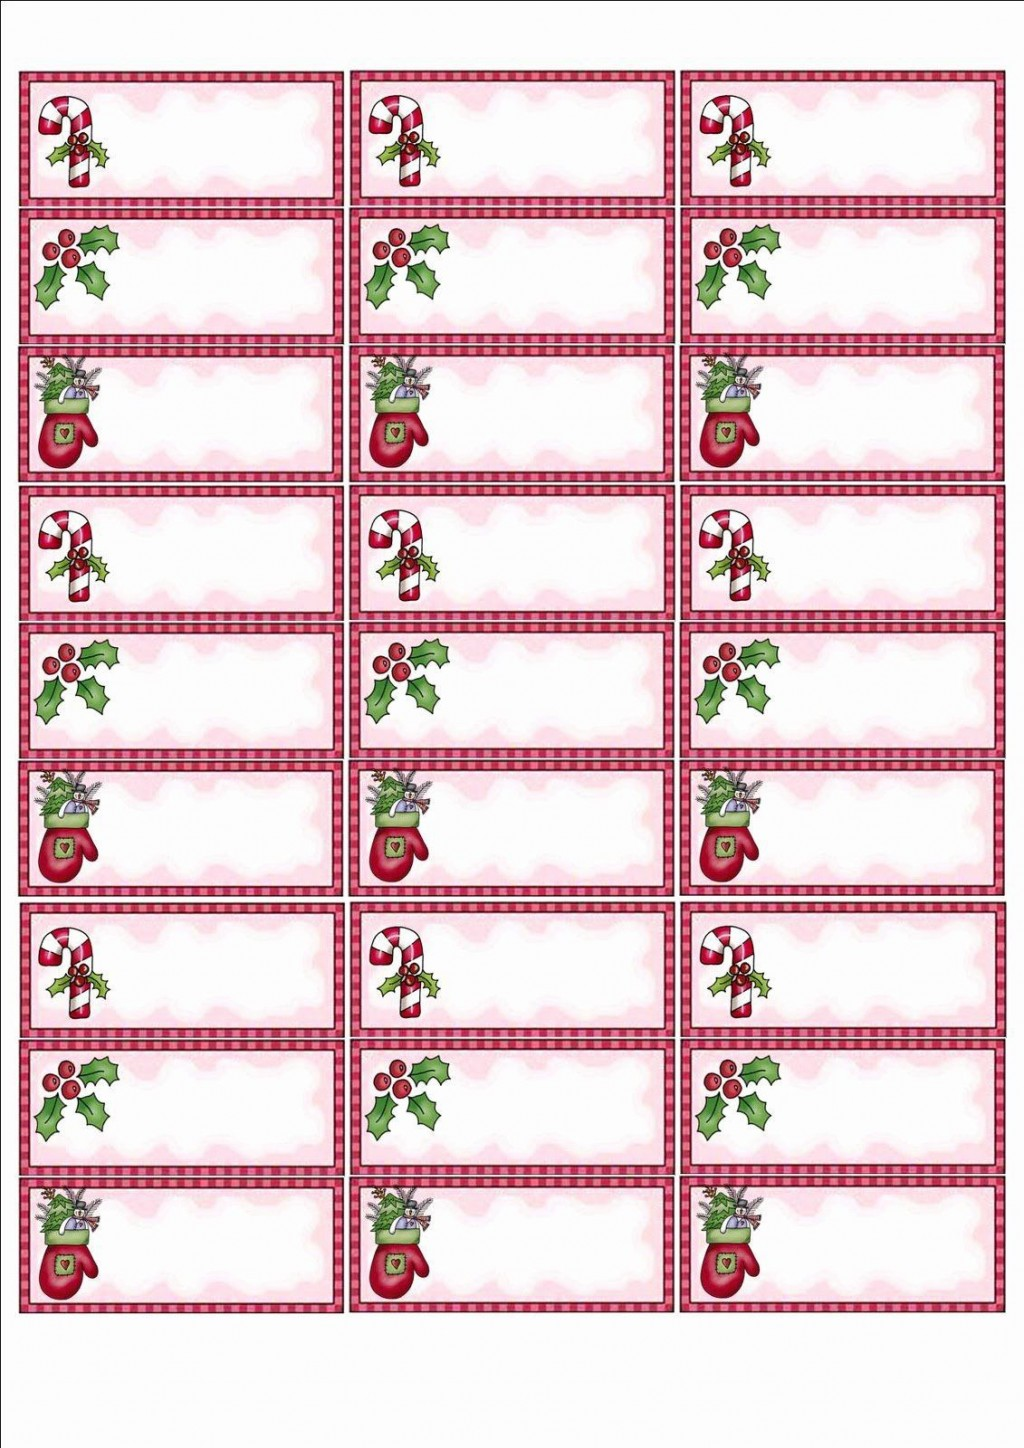 004 Formidable Christma Card Addres Label Template Concept Large